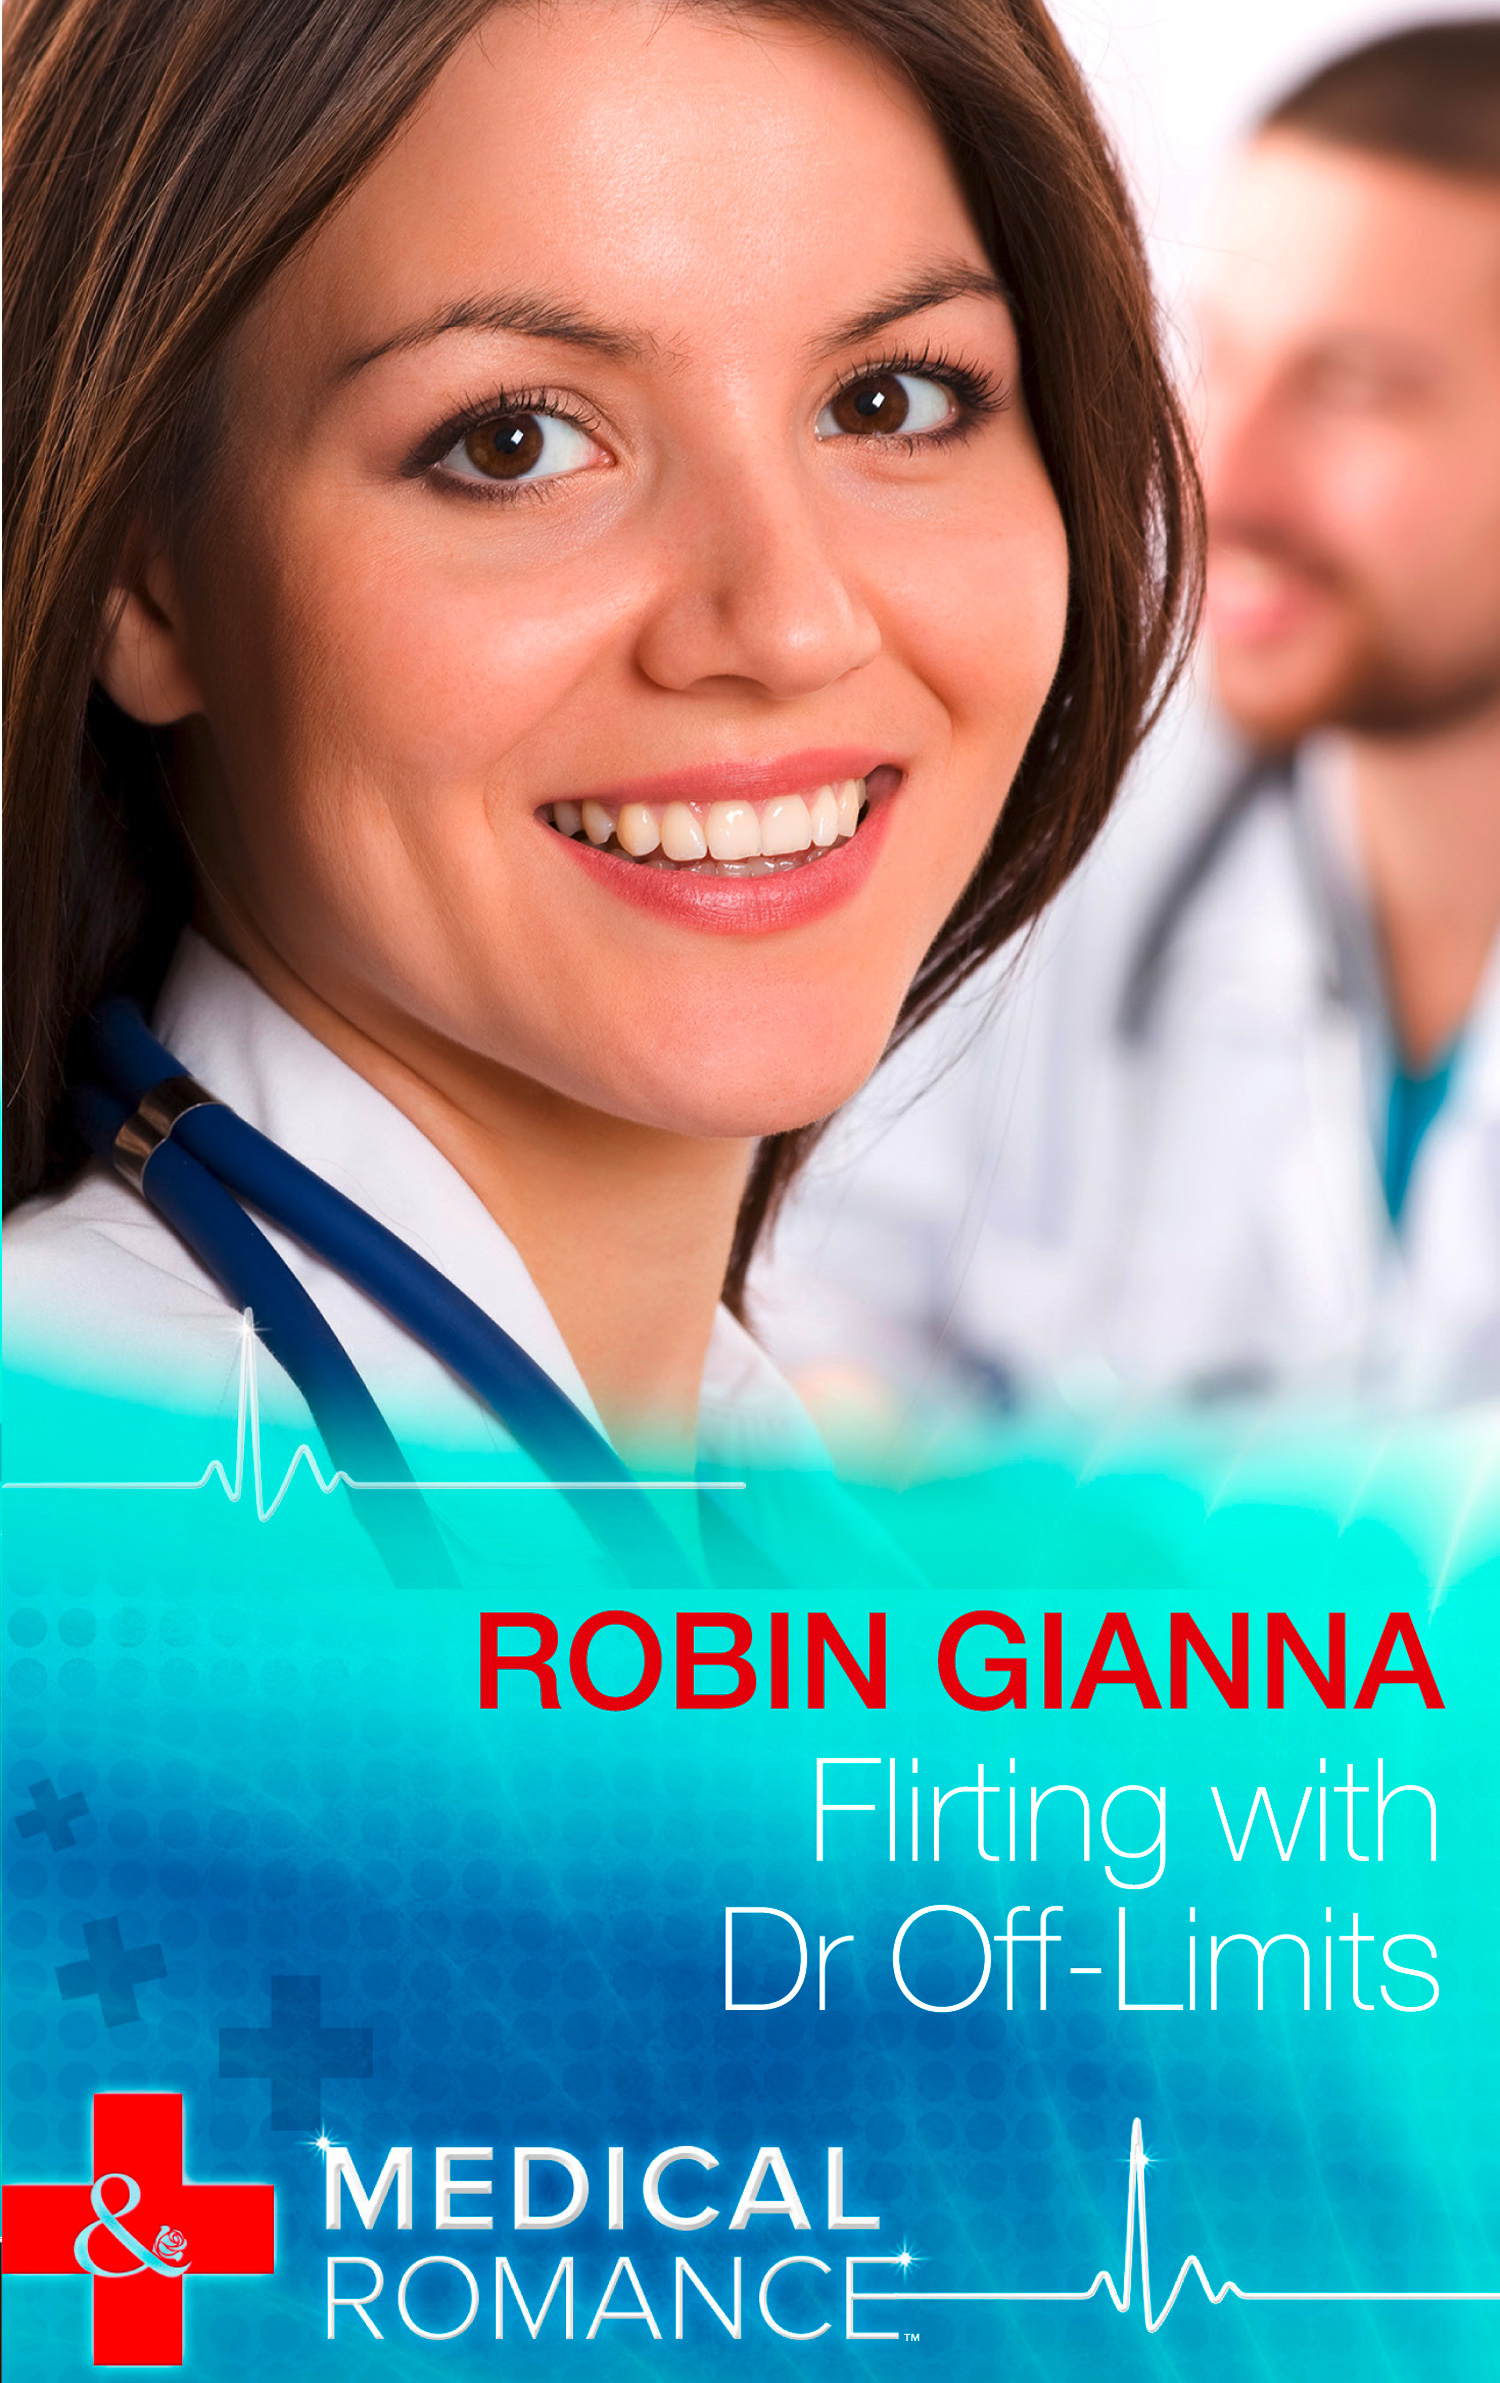 Flirting with Dr Off-Limits